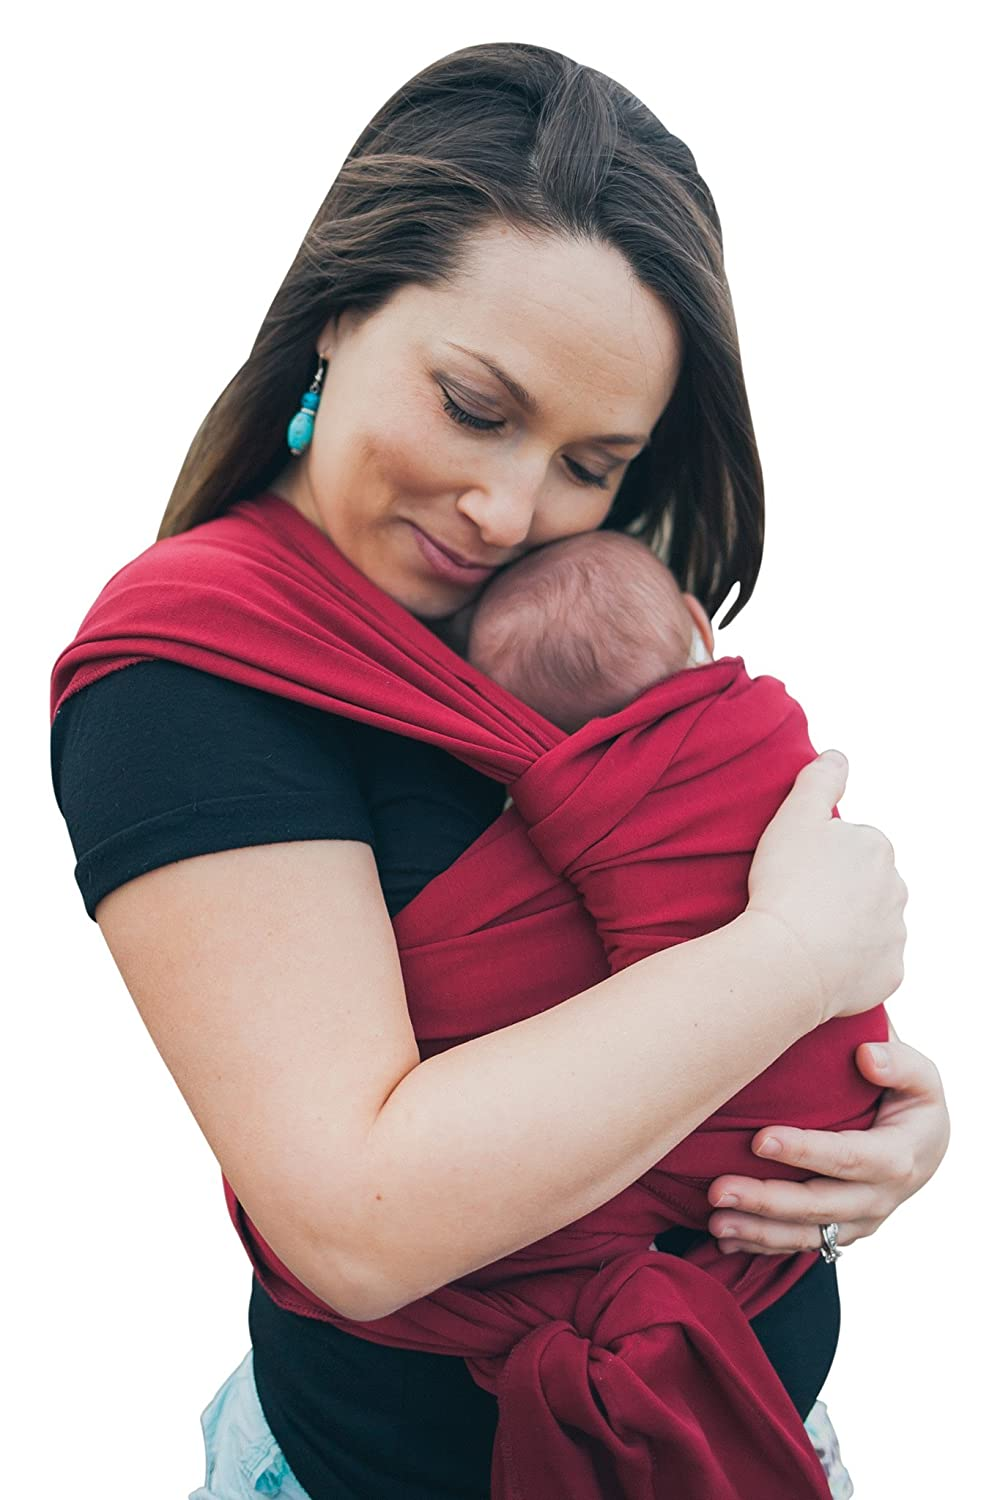 Baby Wrap Sling Organic Stretchy Wrap Carrier | UK/EU Safety Tested | Made in the UK by Joy and Joe | Suitable from Birth to 16Kg | Premium Quality Baby Sling | Boxed with Hat, Bag and full colour instruction booklet | Suitable for Breastfeeding | One Siz